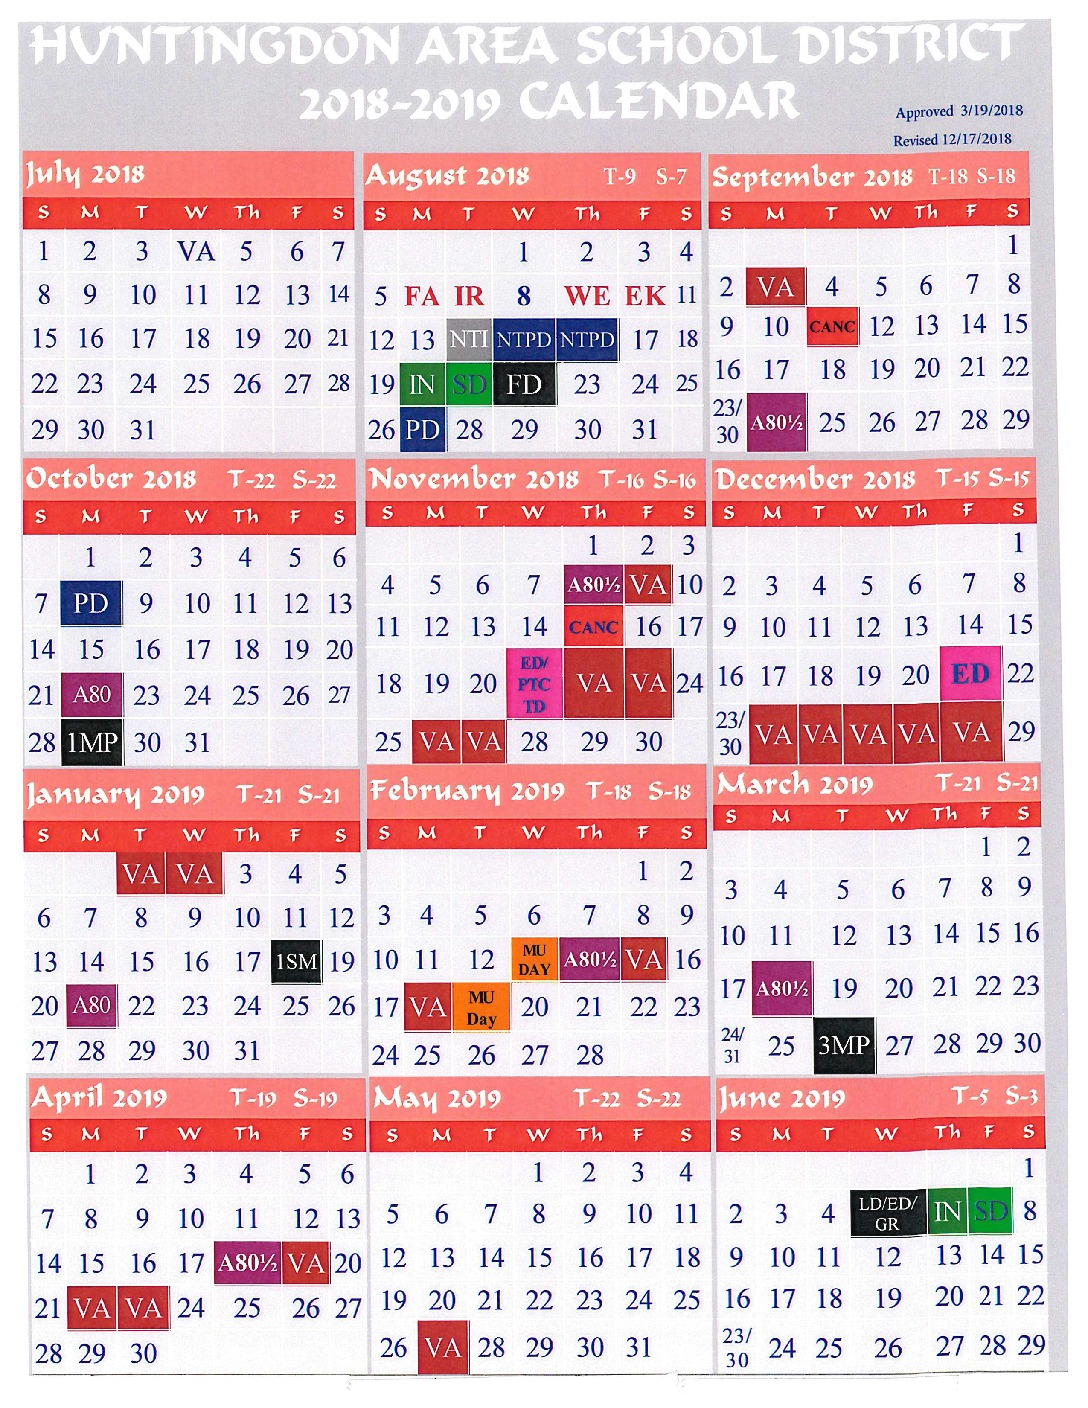 thumbnail of 2018-2019 School Calendar rev. 12172018